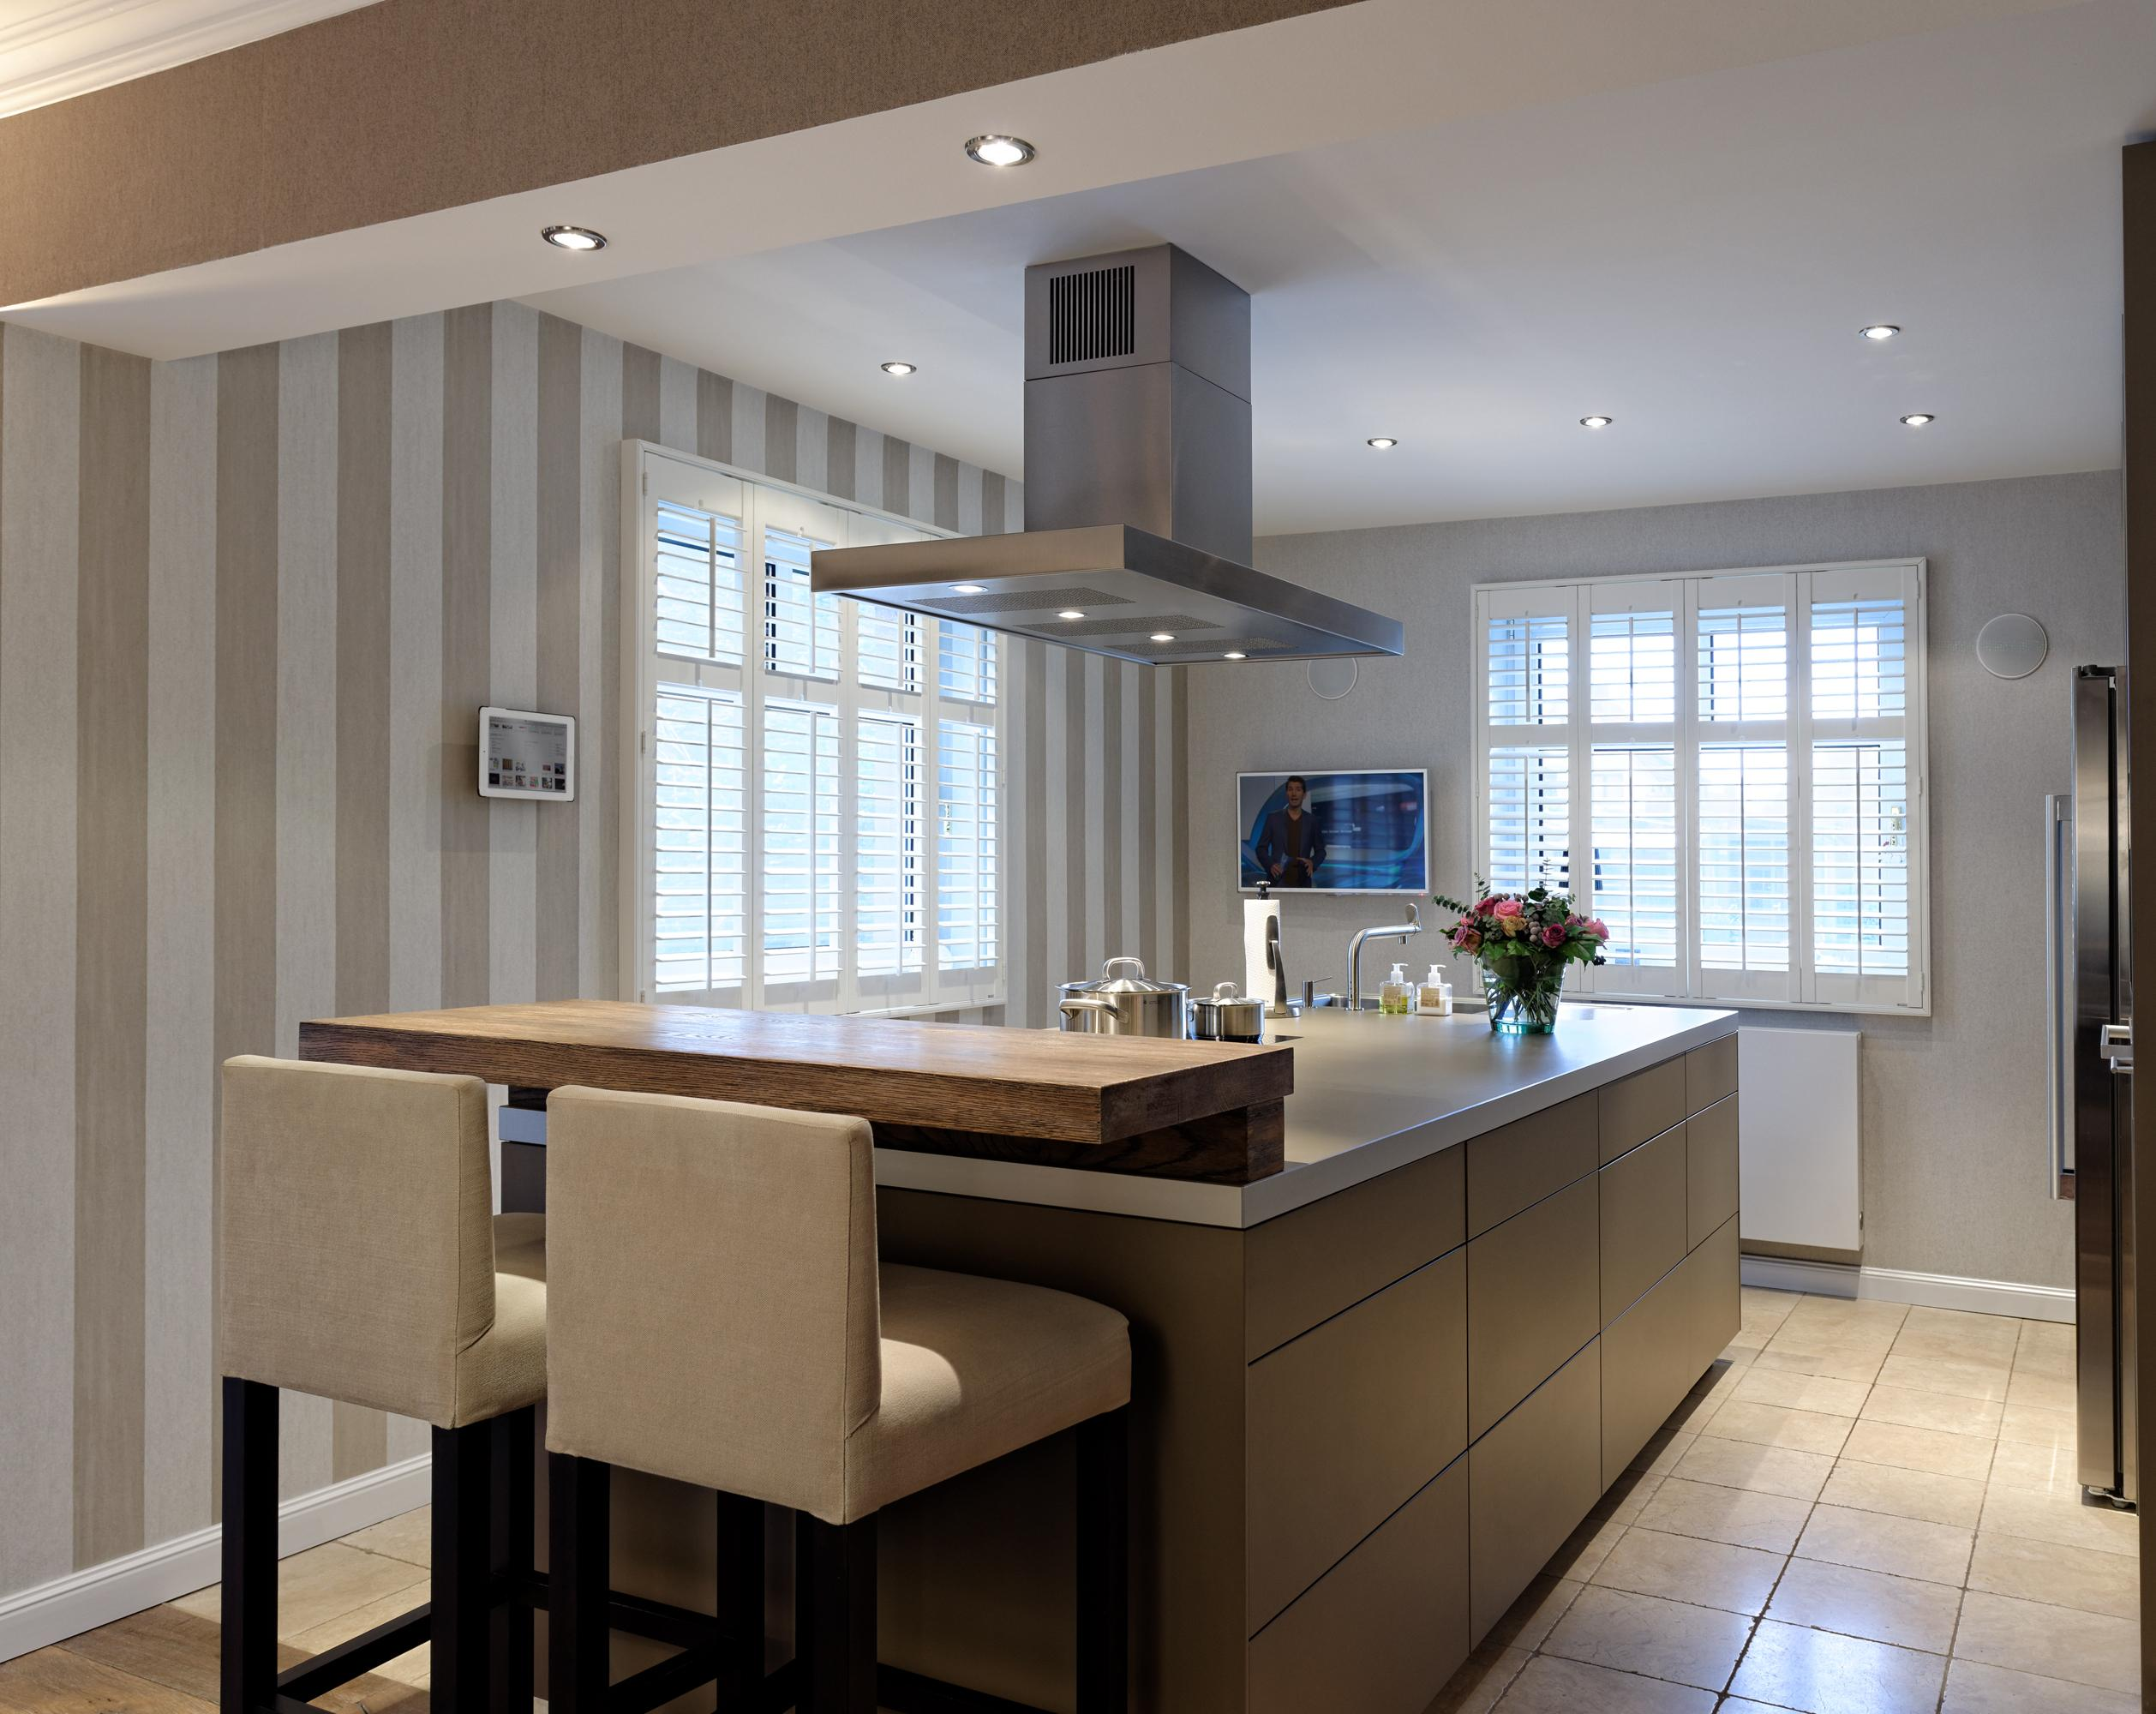 barplatte bilder ideen couchstyle. Black Bedroom Furniture Sets. Home Design Ideas